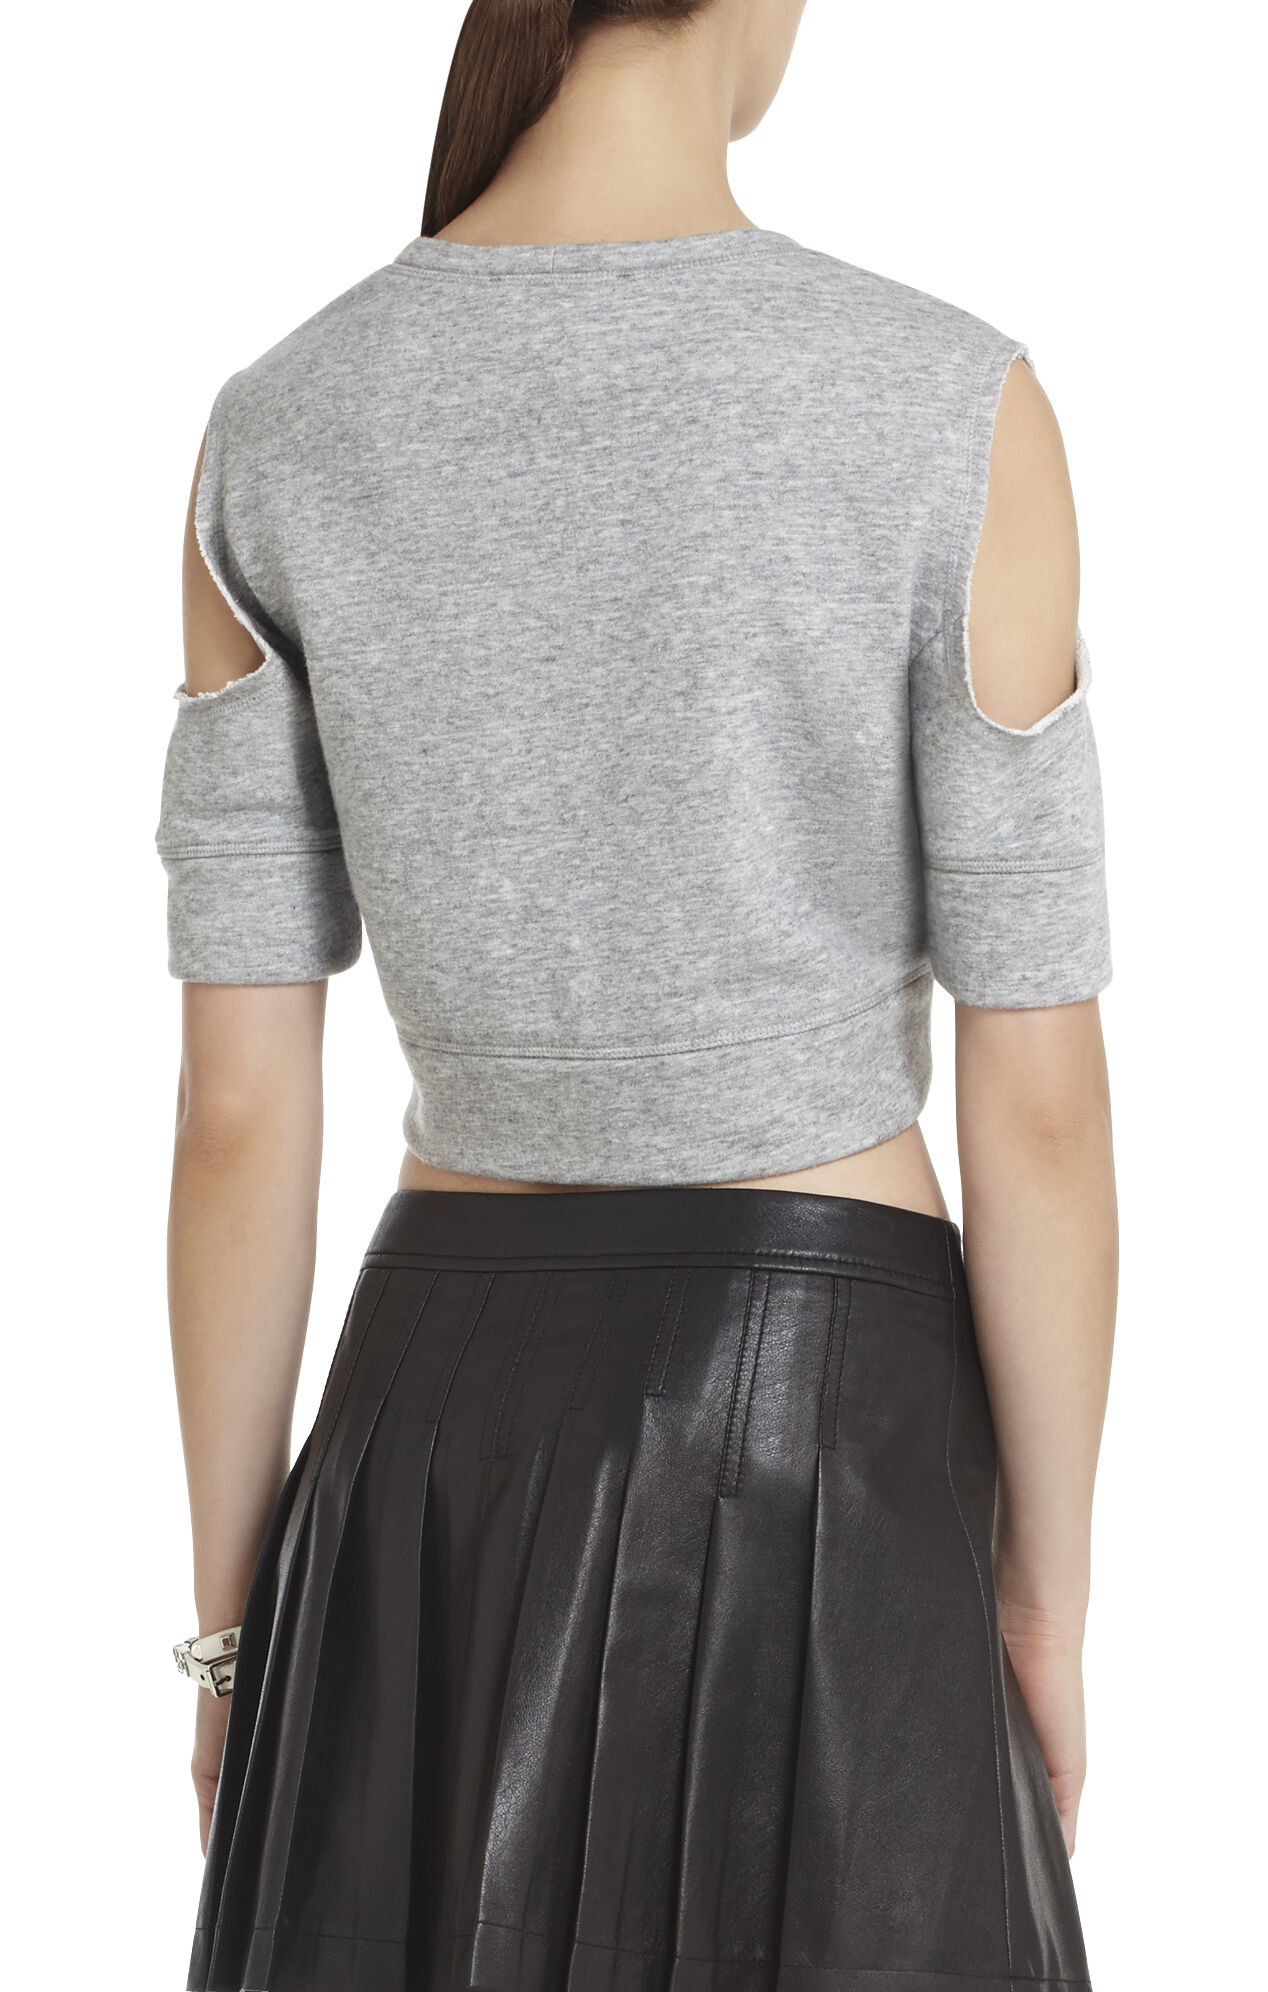 Shadie Cropped Sweatshirt